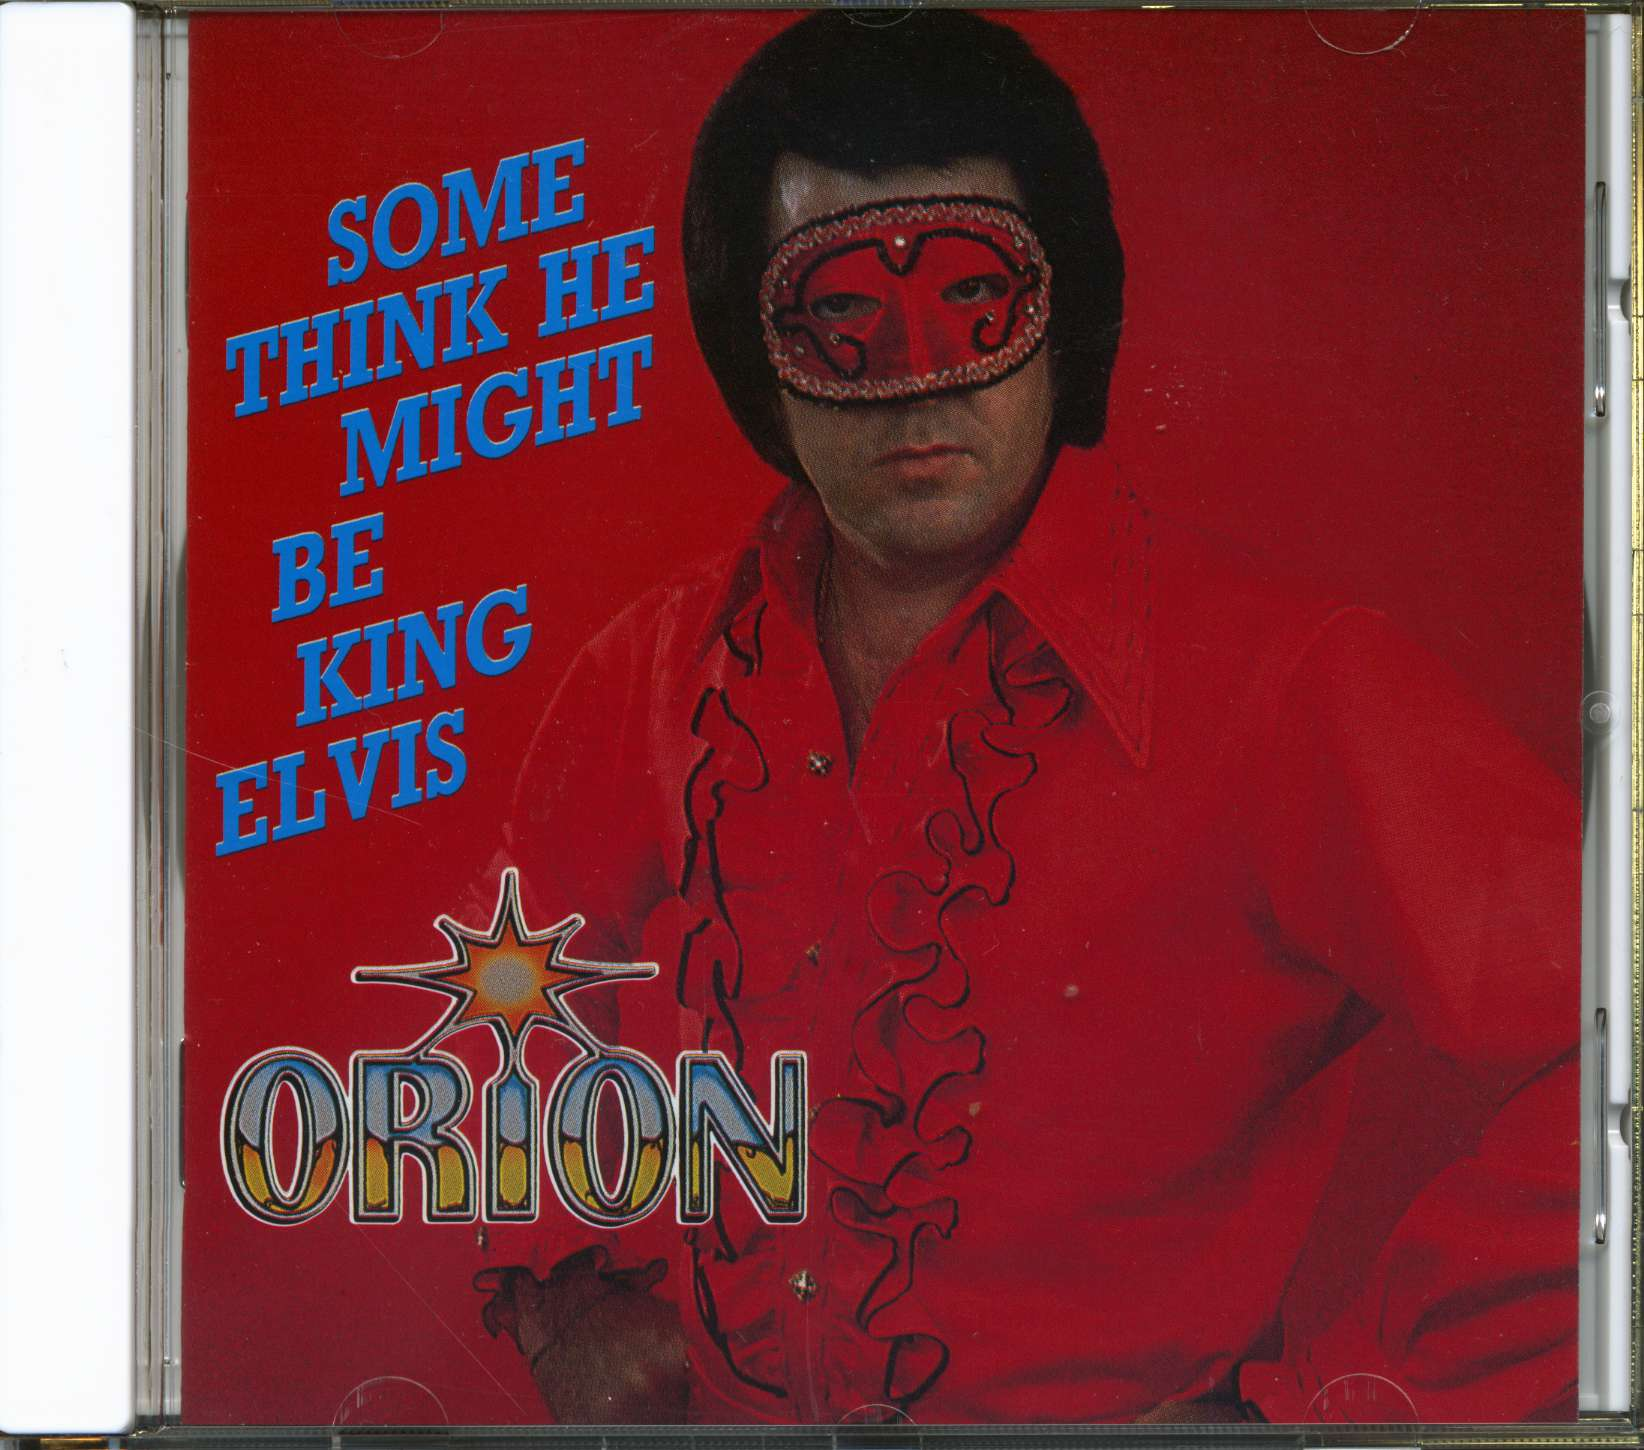 ce5bc4e8fa1 ORION CD  Some Think He Might Be King Elvis - Bear Family Records